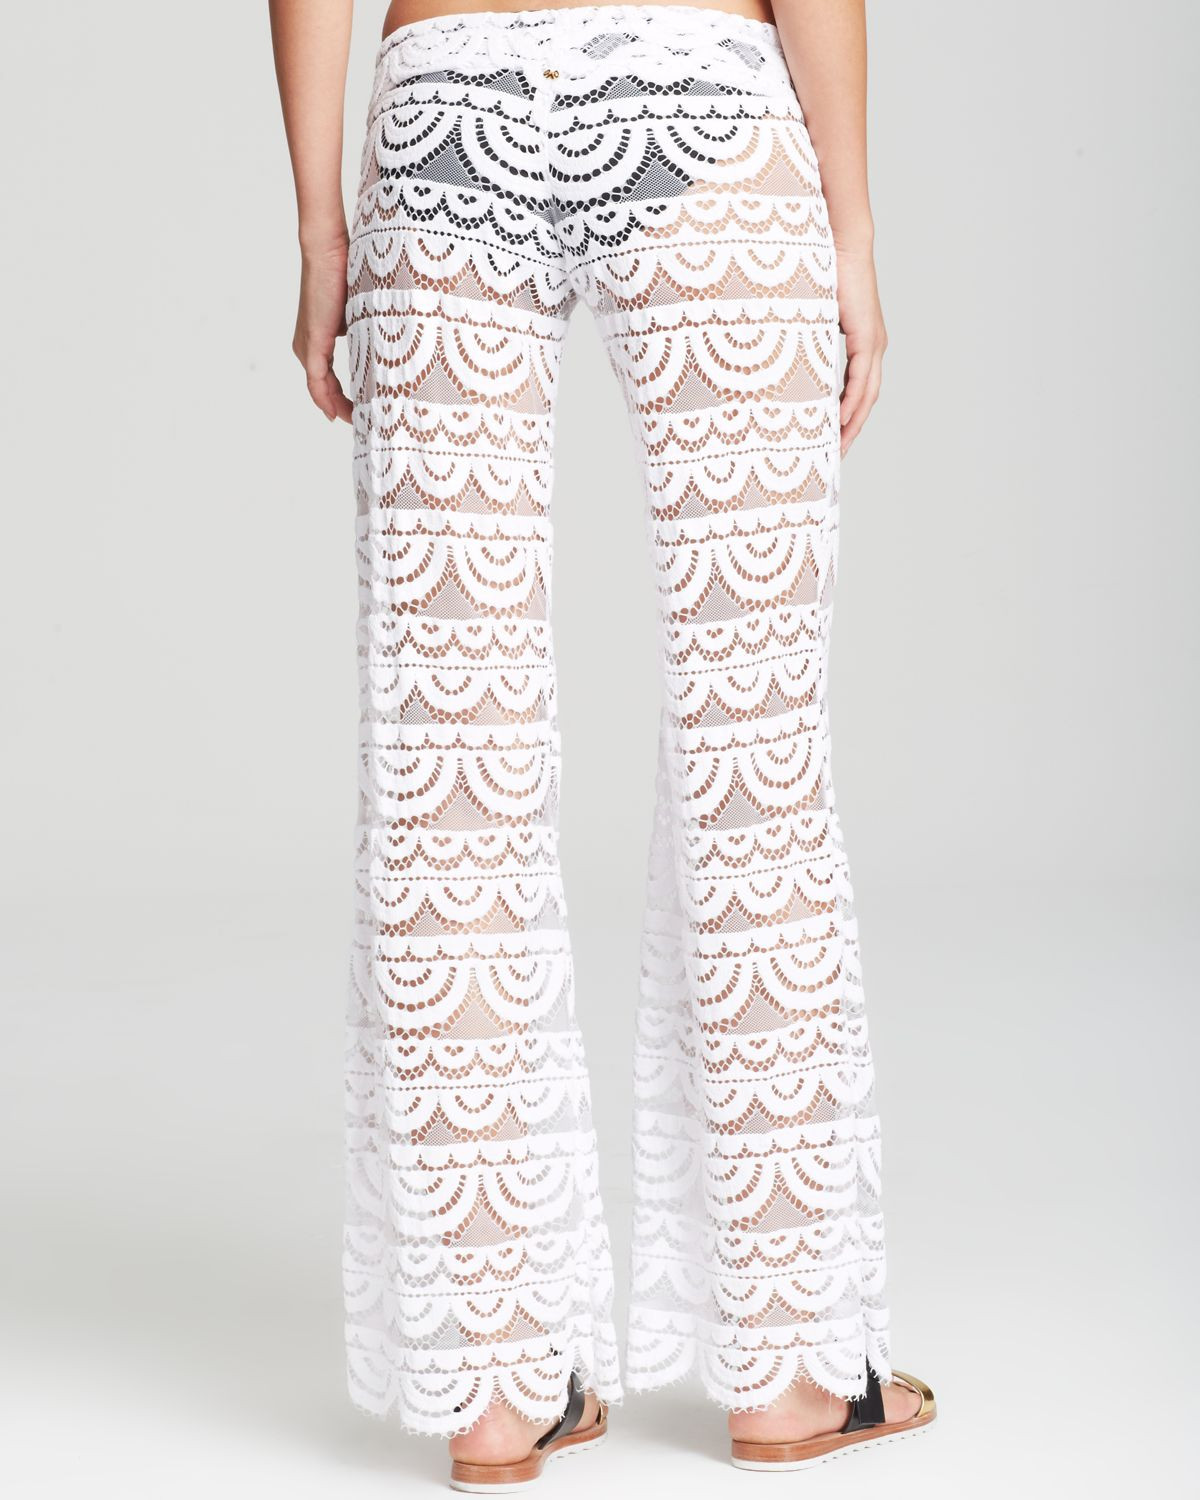 White Crochet Cover Up Lovely Pilyq Malibu Lace Crochet Pants Swim Cover Up In White Of Unique 42 Pictures White Crochet Cover Up